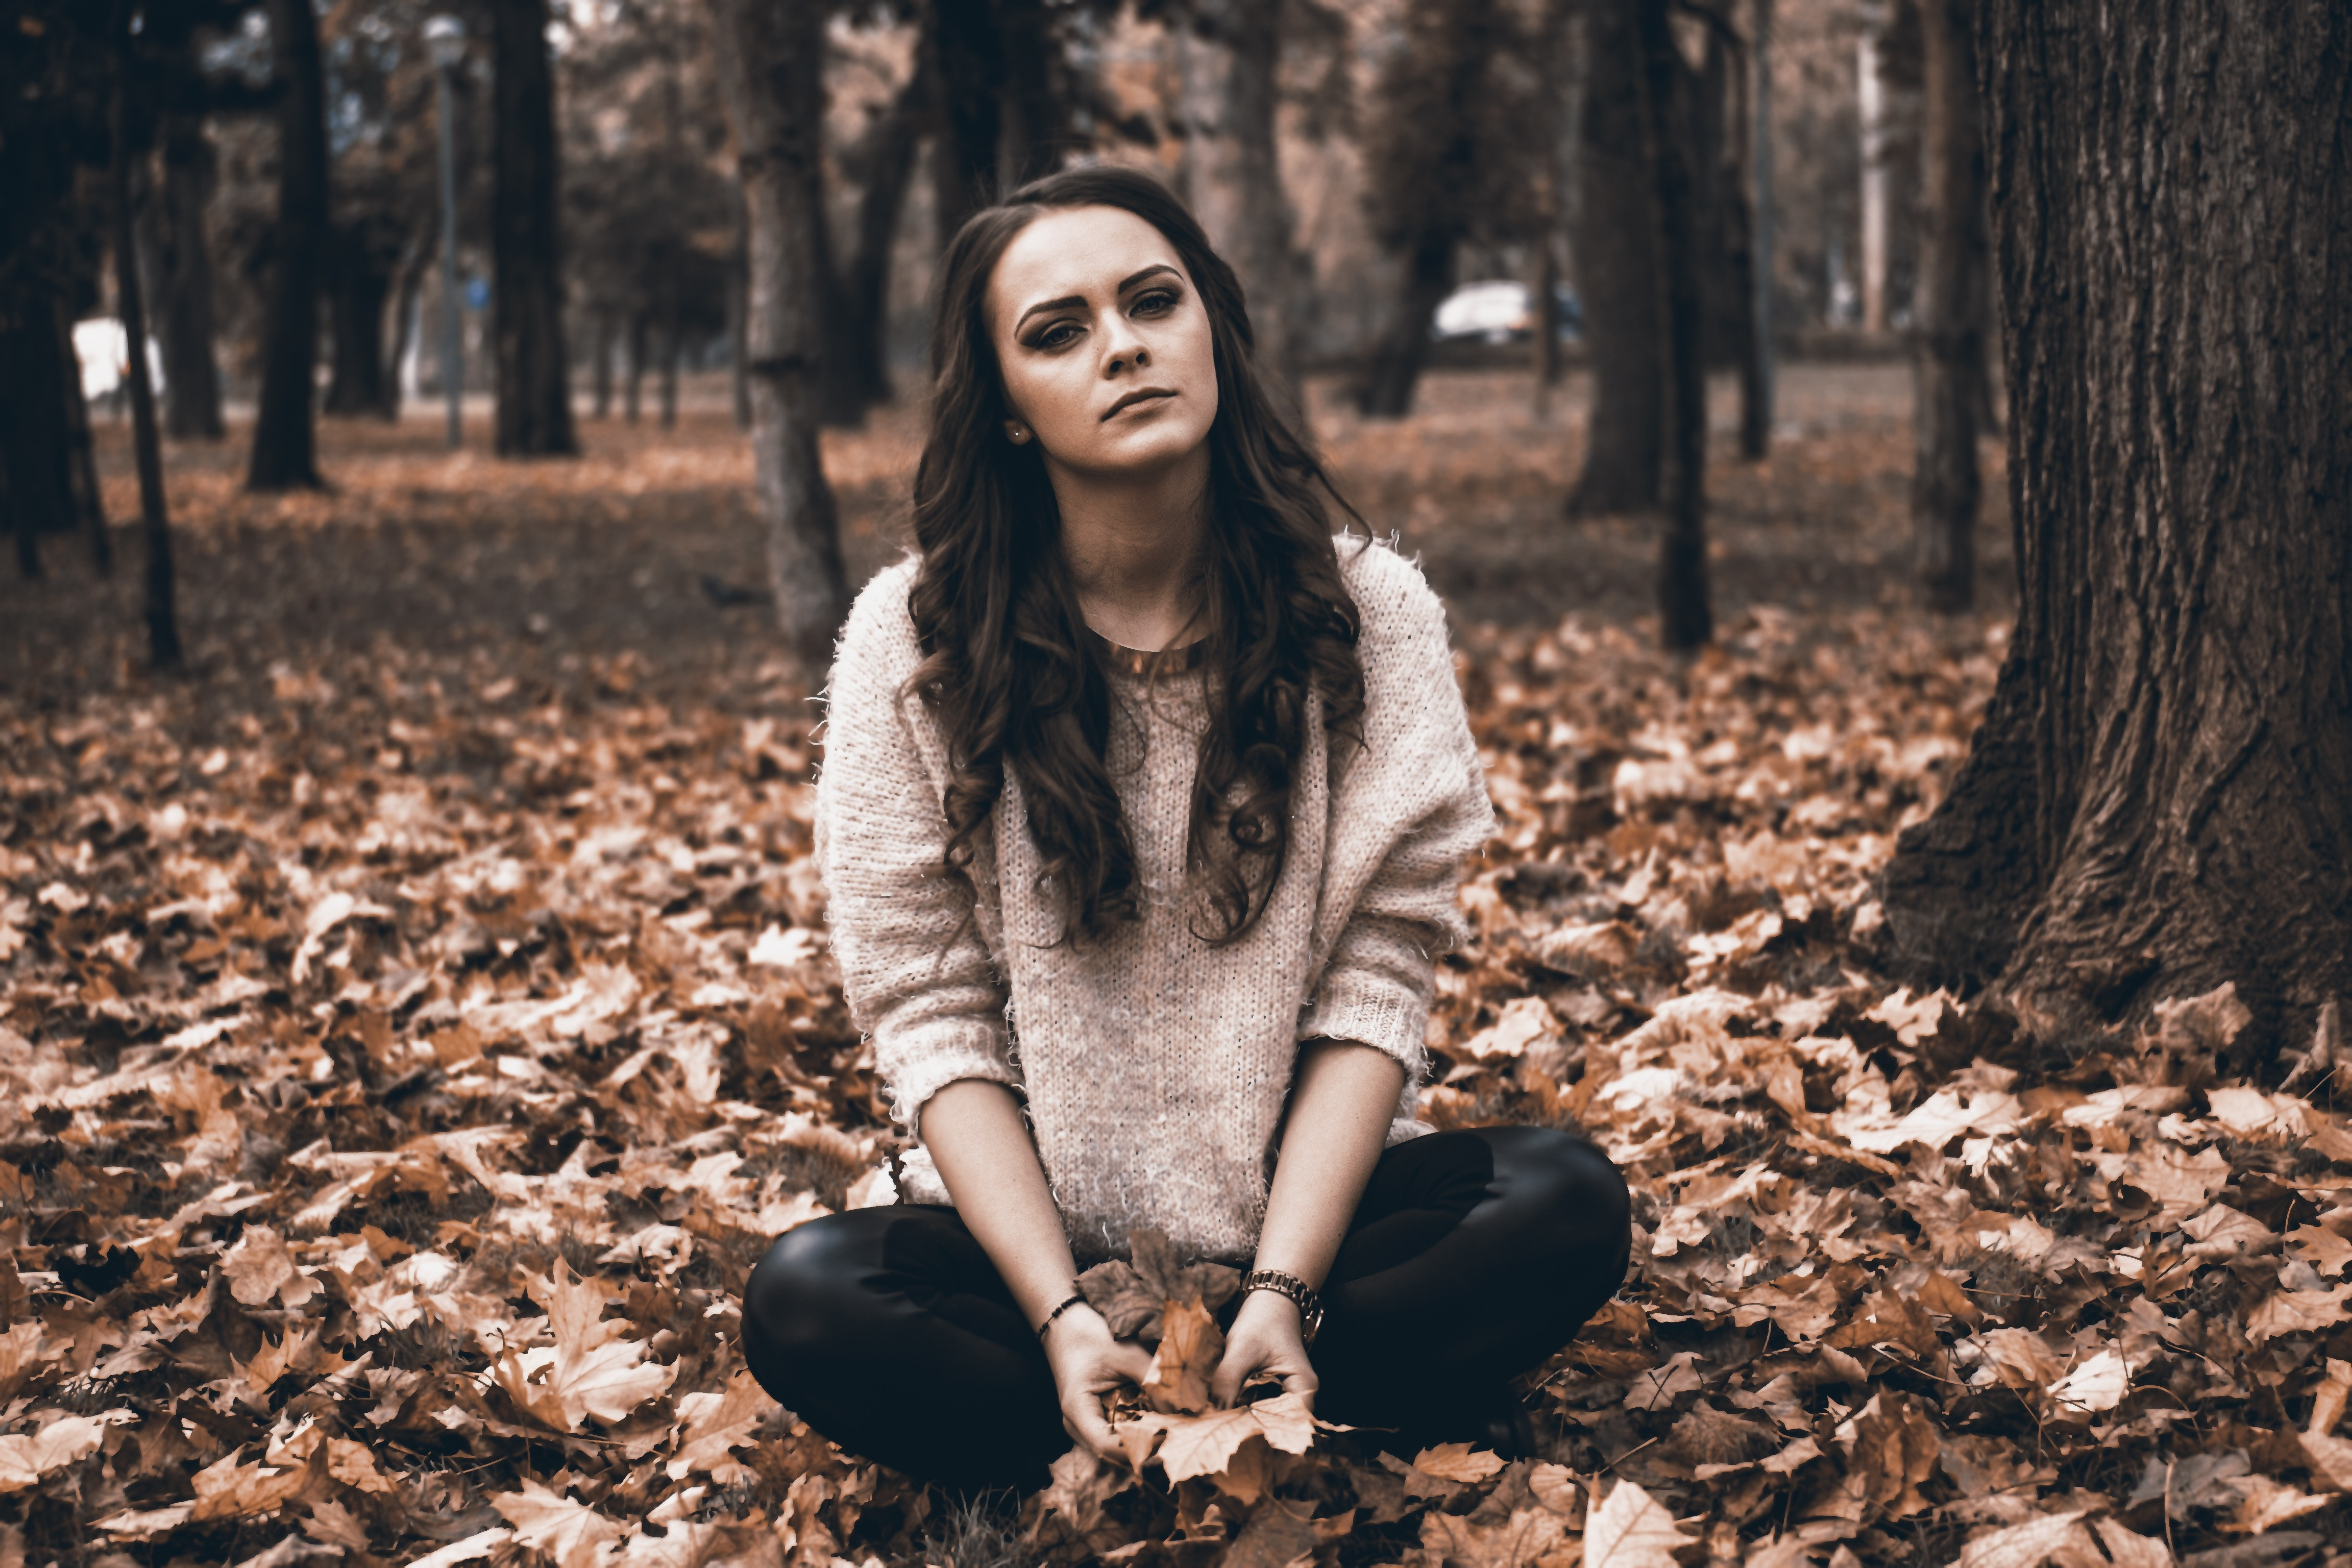 Portrait of a young woman in forest photo